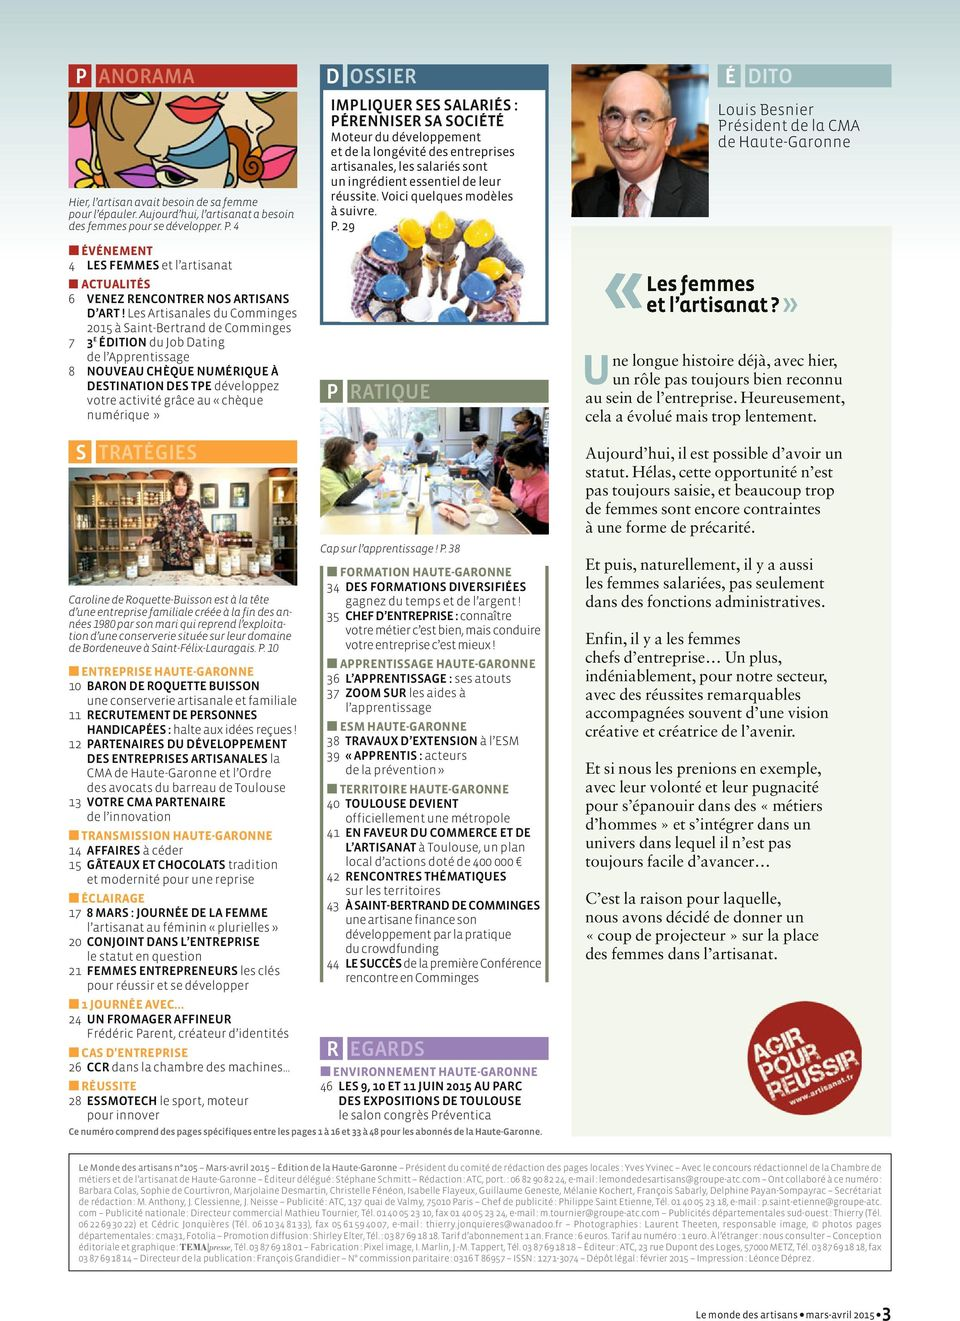 Les Artisanales du Comminges 2015 à Saint-Bertrand de Comminges 7 3 E ÉDITION du Job Dating de l Apprentissage 8 NOUVEAU CHÈQUE NUMÉRIQUE À DESTINATION DES TPE développez votre activité grâce au